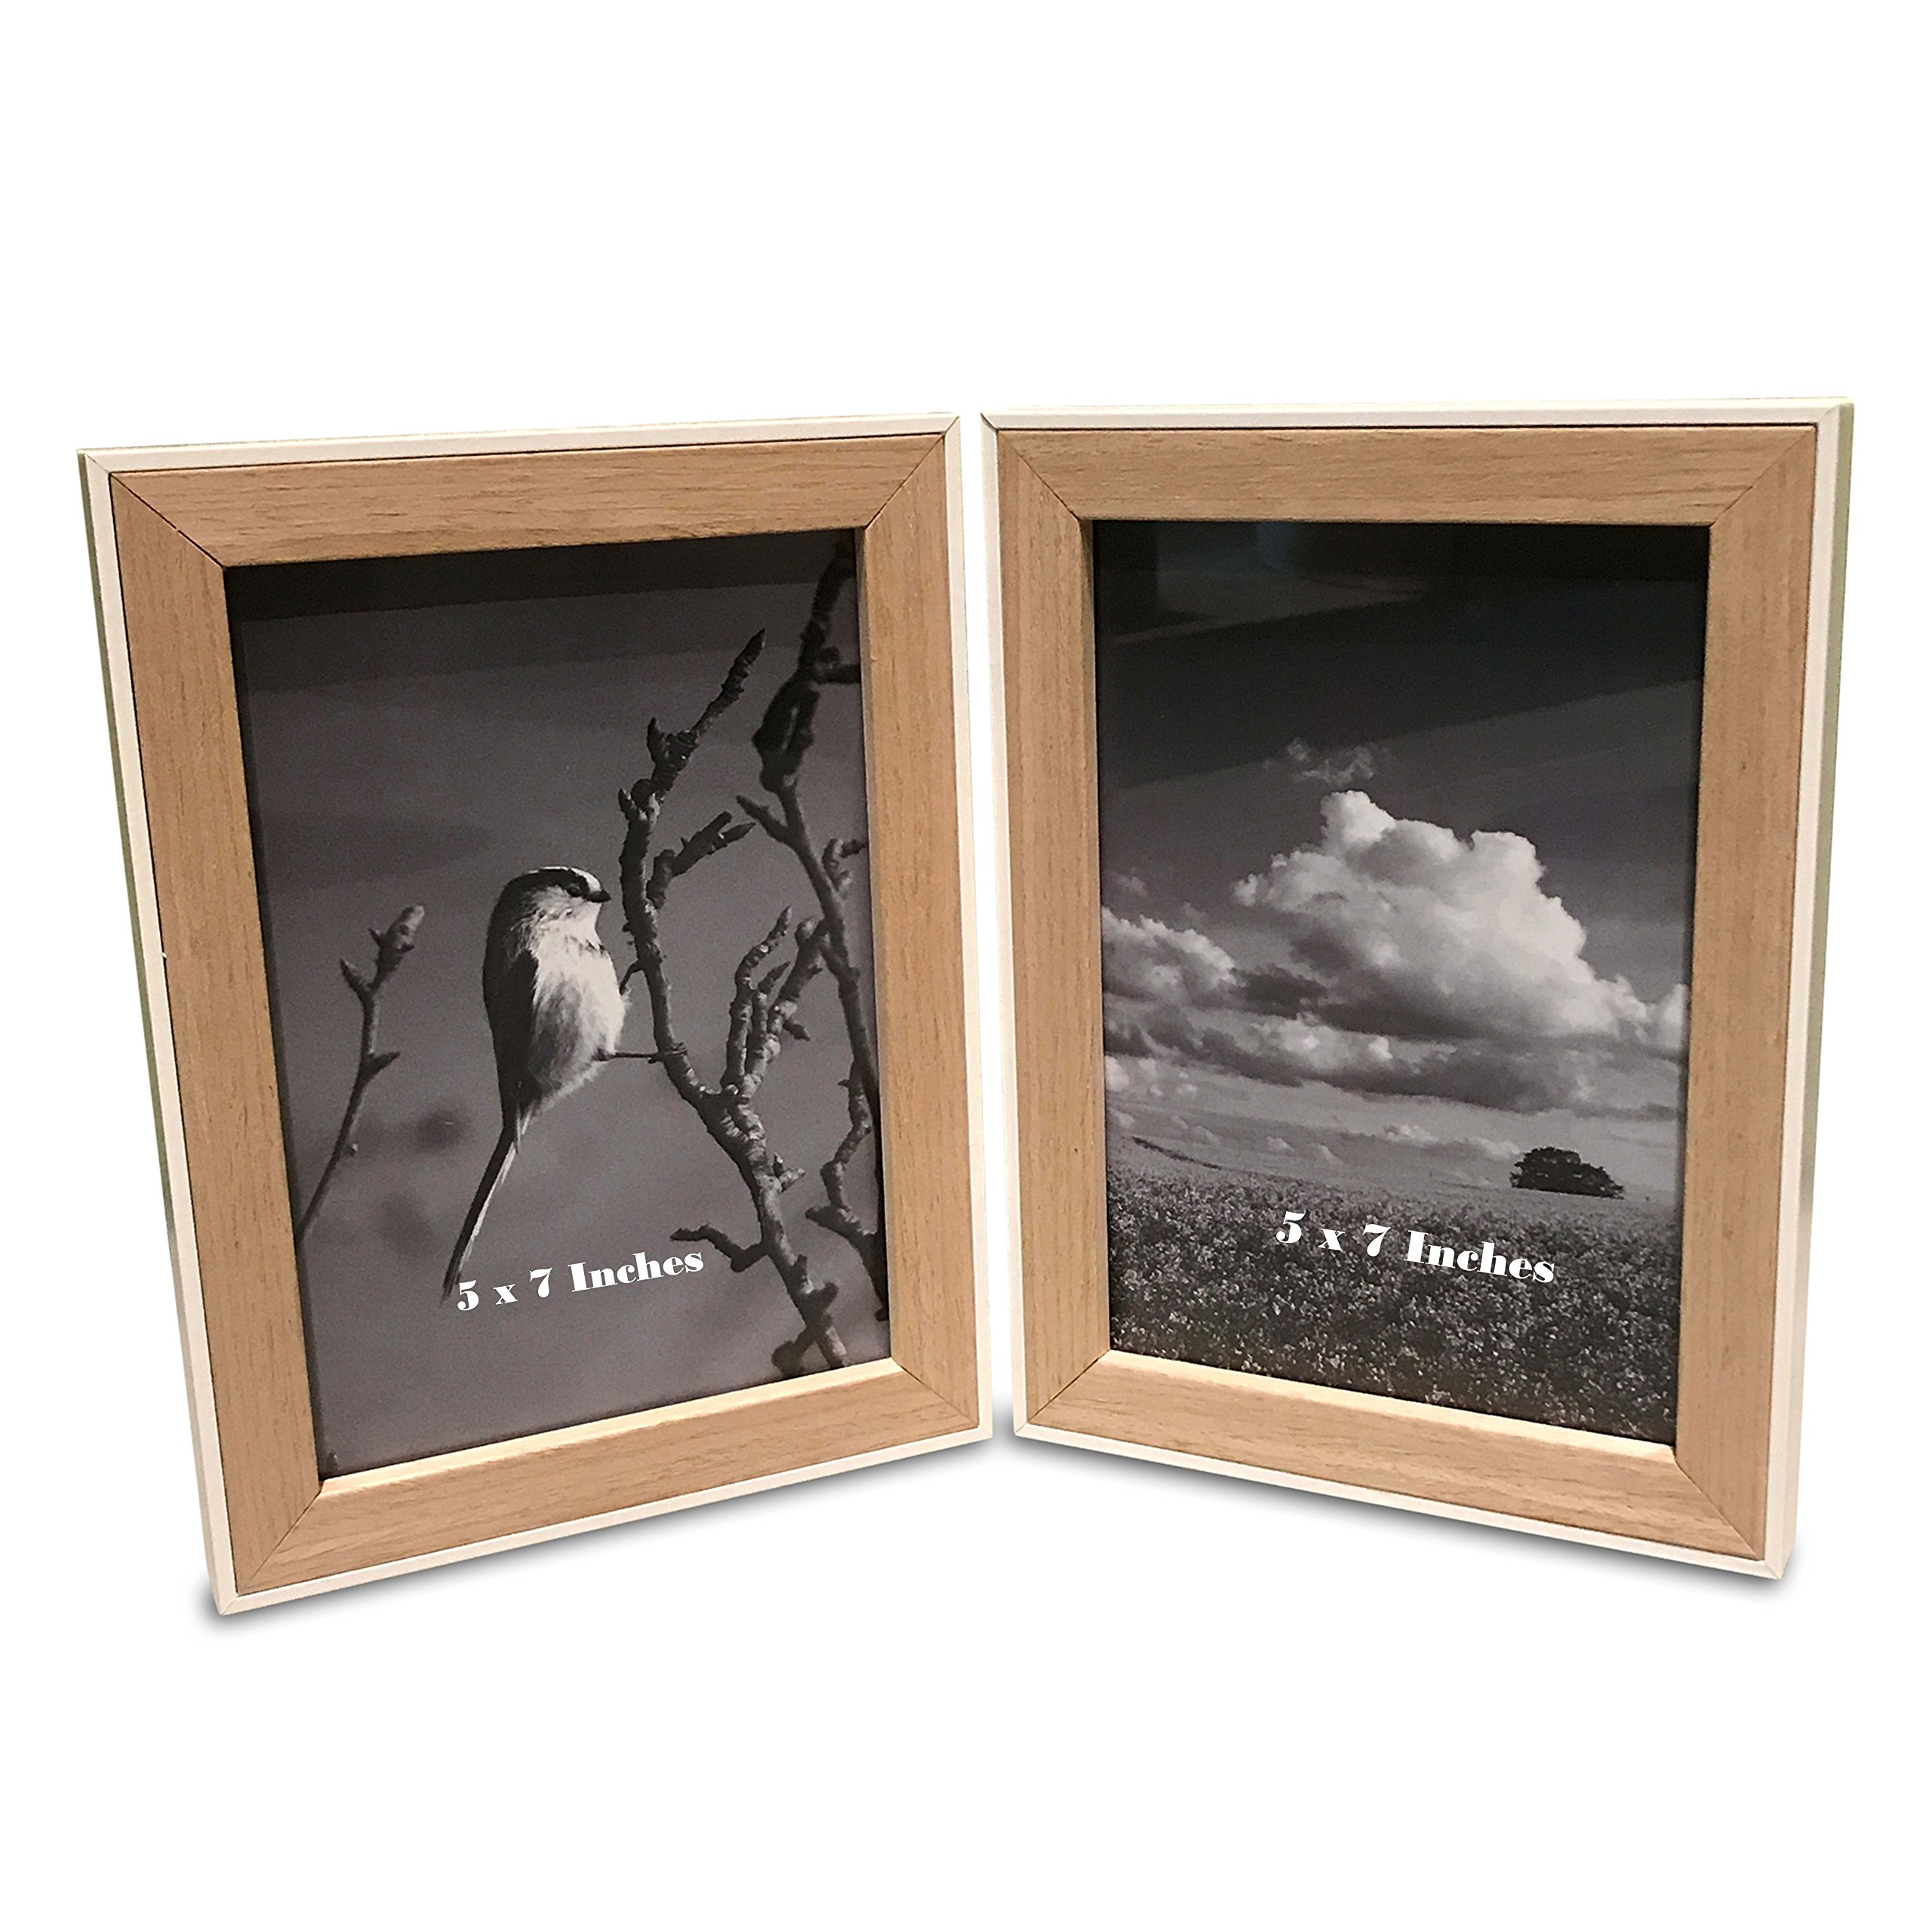 The Naturally Modern Hinged Double Photo Frame, for 2 5 X 7 Prints, Clean White Case Around Clear Stained Wood, Each Window measures 5 x7, Total Frame Size 6 W x 8 H Inches, By WHW